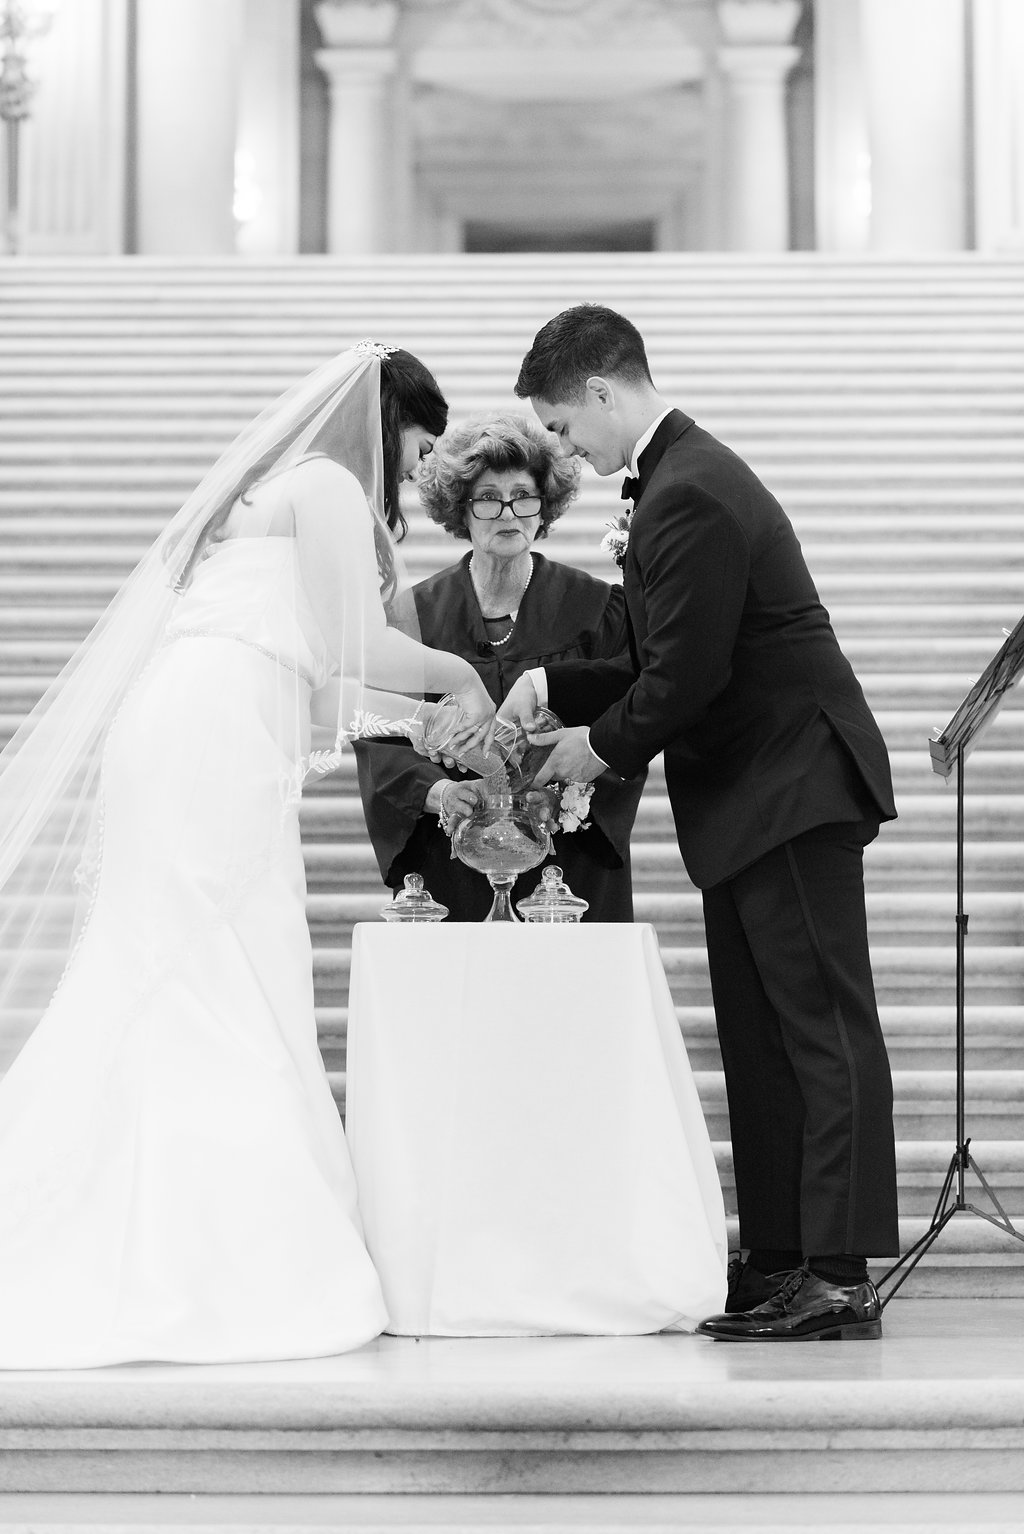 John&Ameera_CityHallWedding-118.jpg